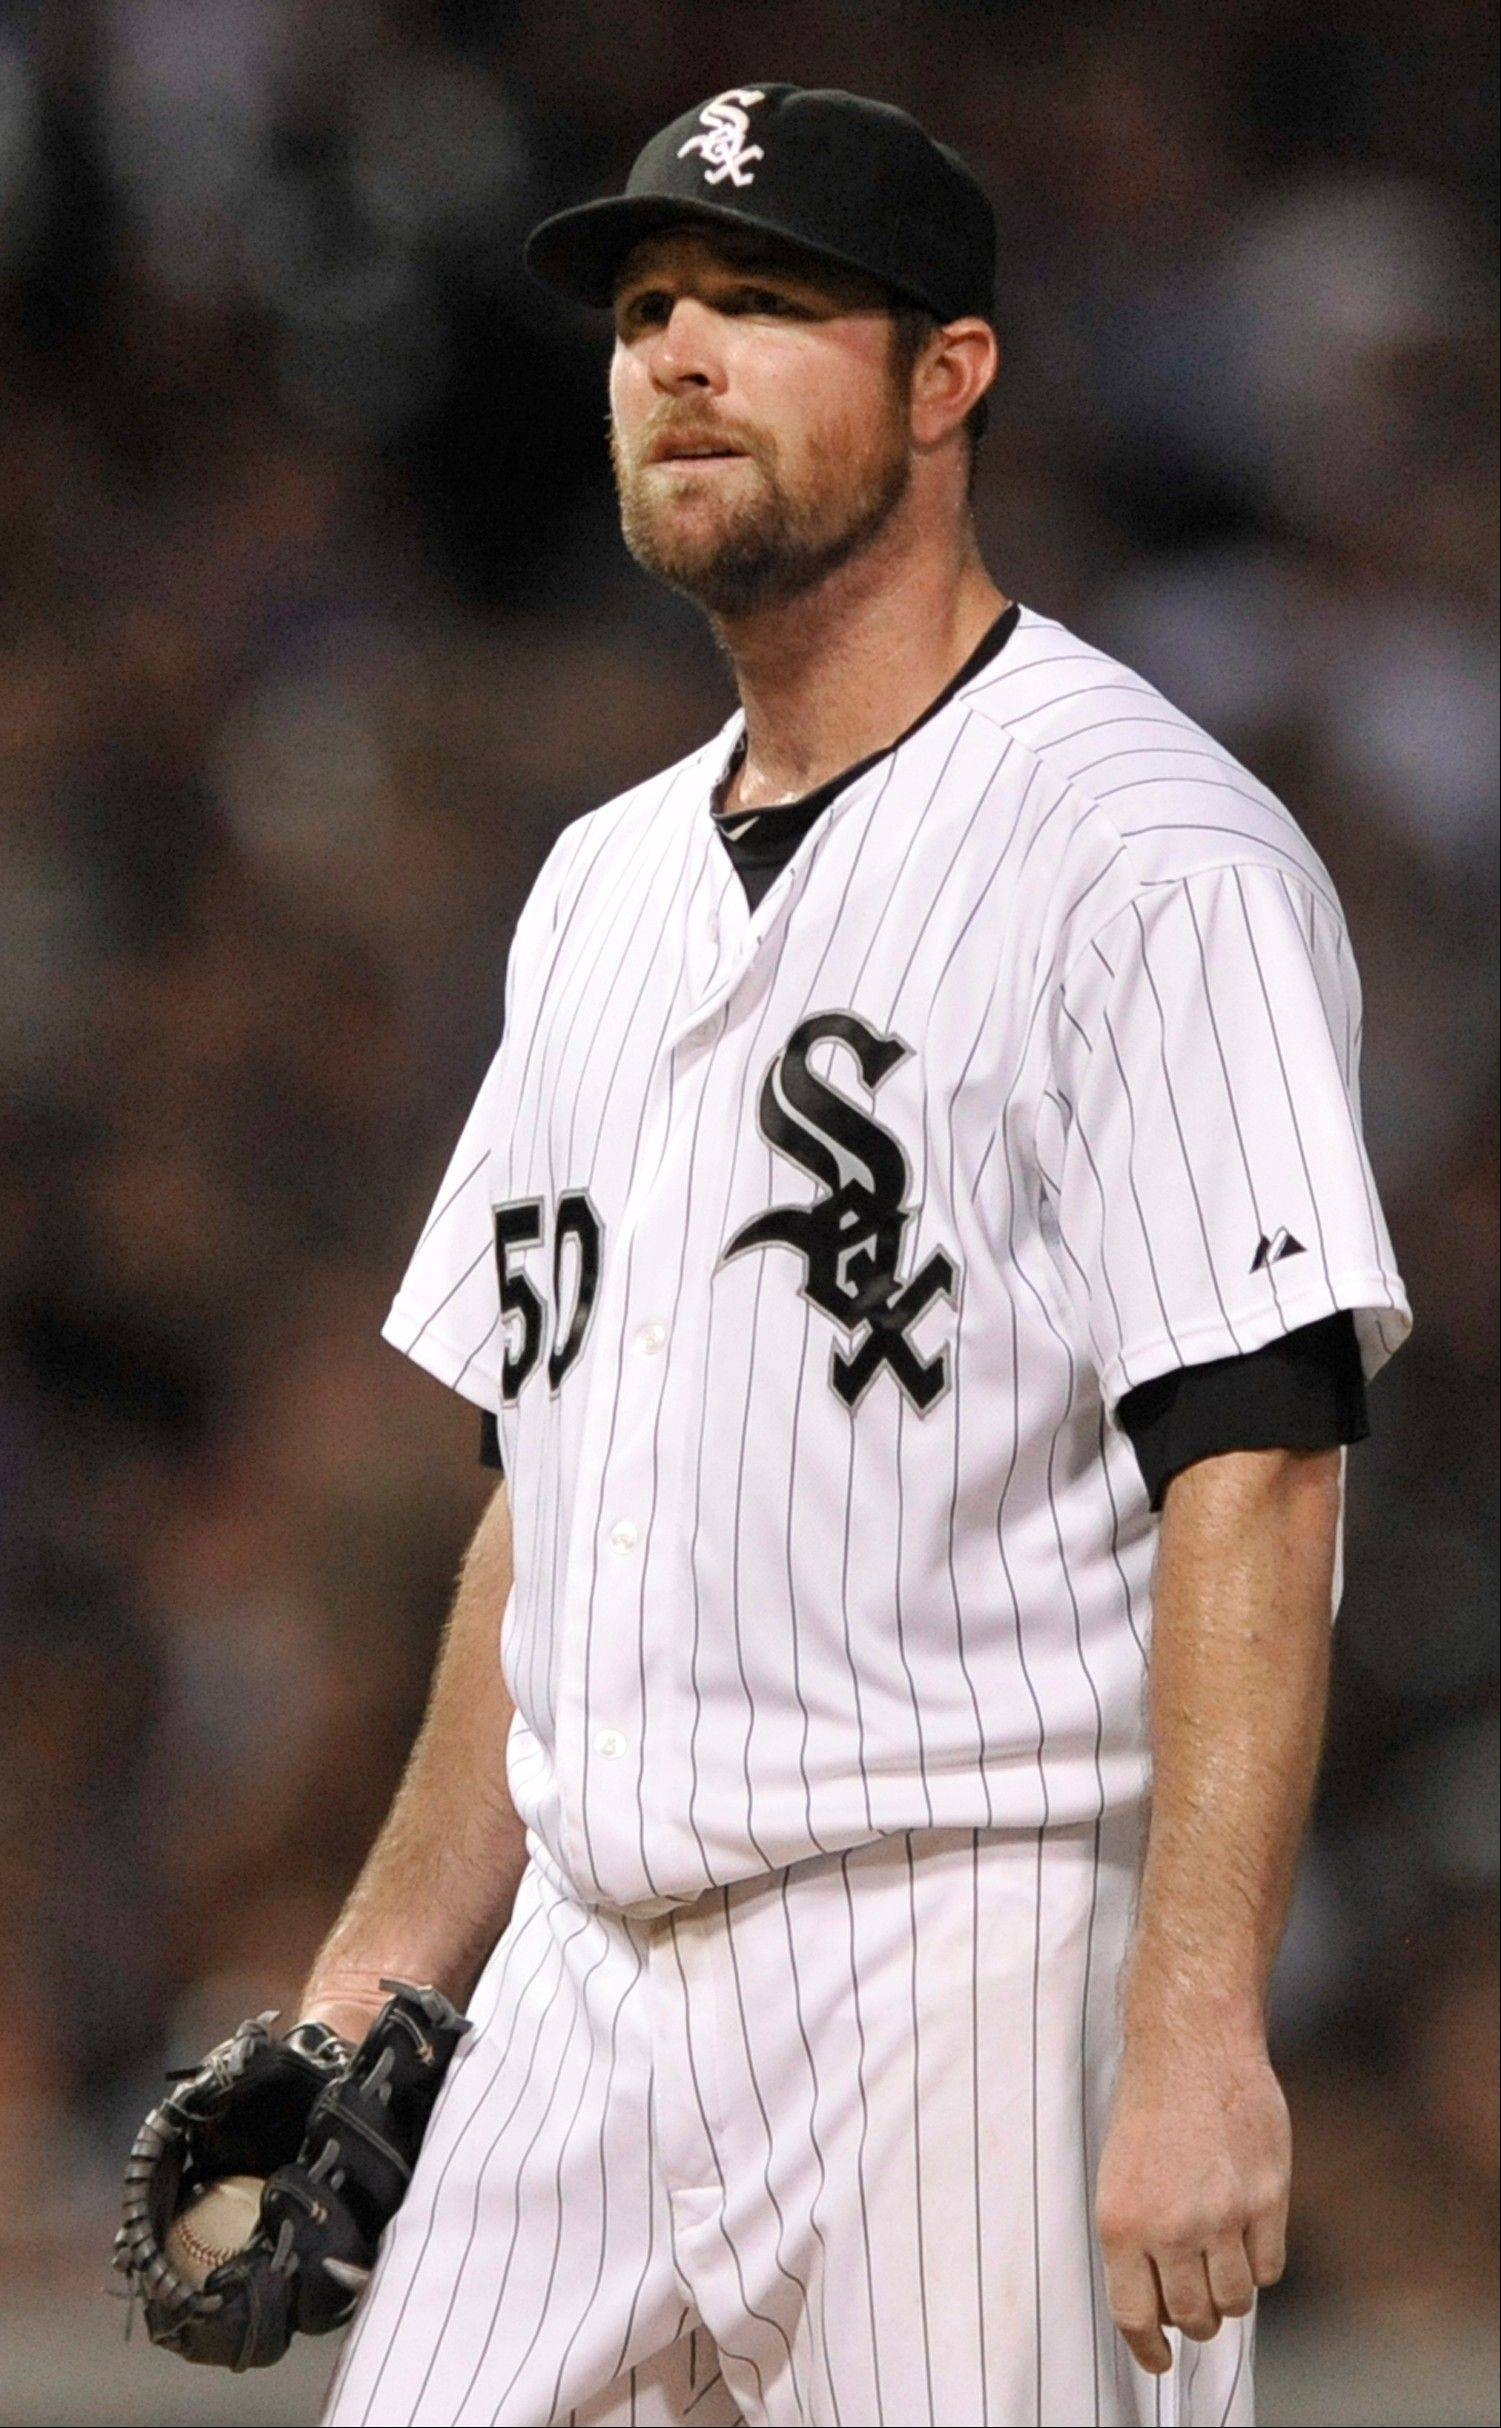 White Sox starter John Danks reacts to giving up a three-run home run to the Atlanta Braves' Brian McCann during Friday's sixth inning at U.S. Cellular Field.